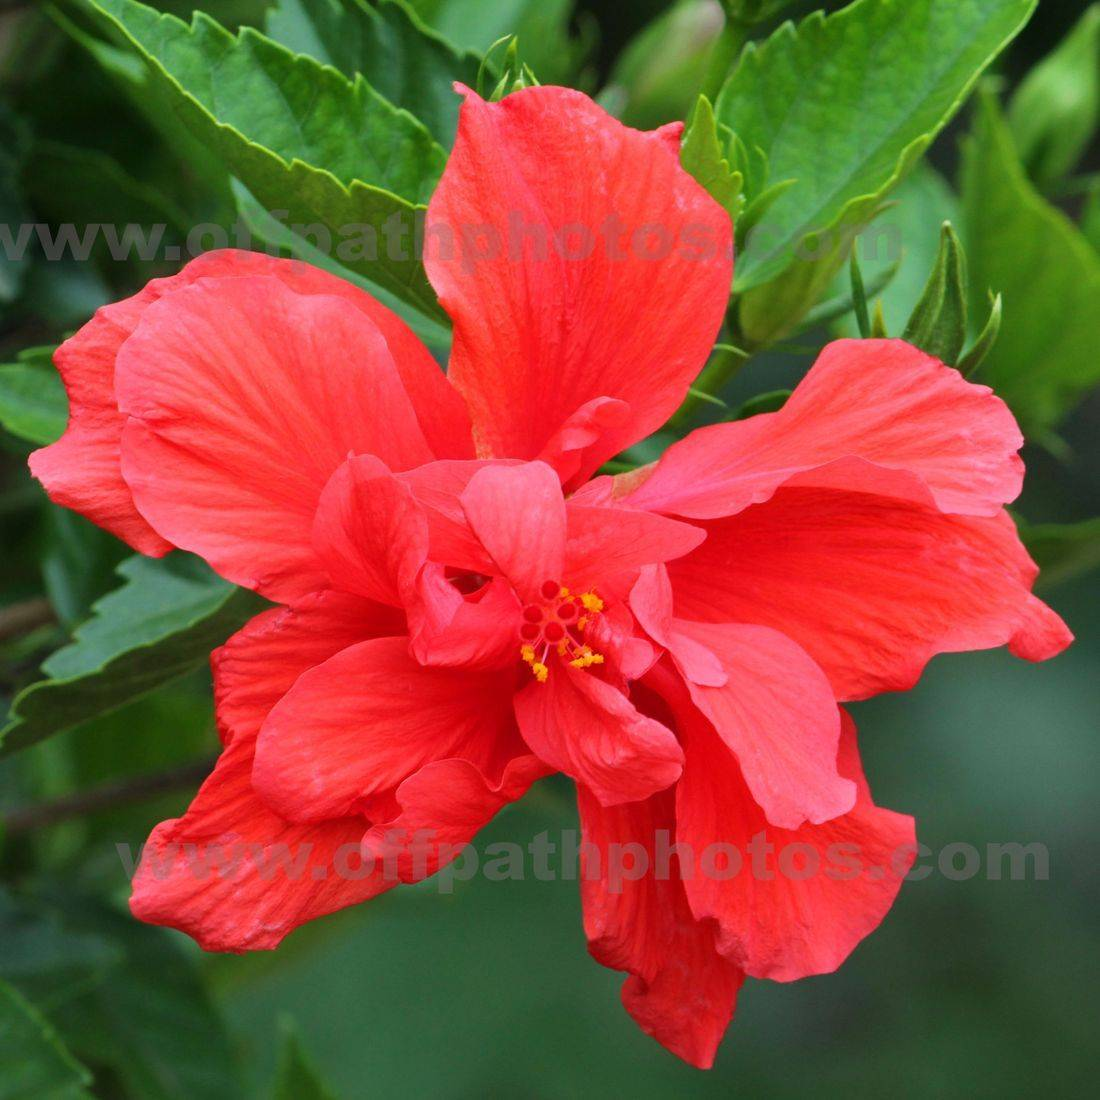 photography, nature, plants, flowers, red, tropical, tea, ornamental, shrubs, trees